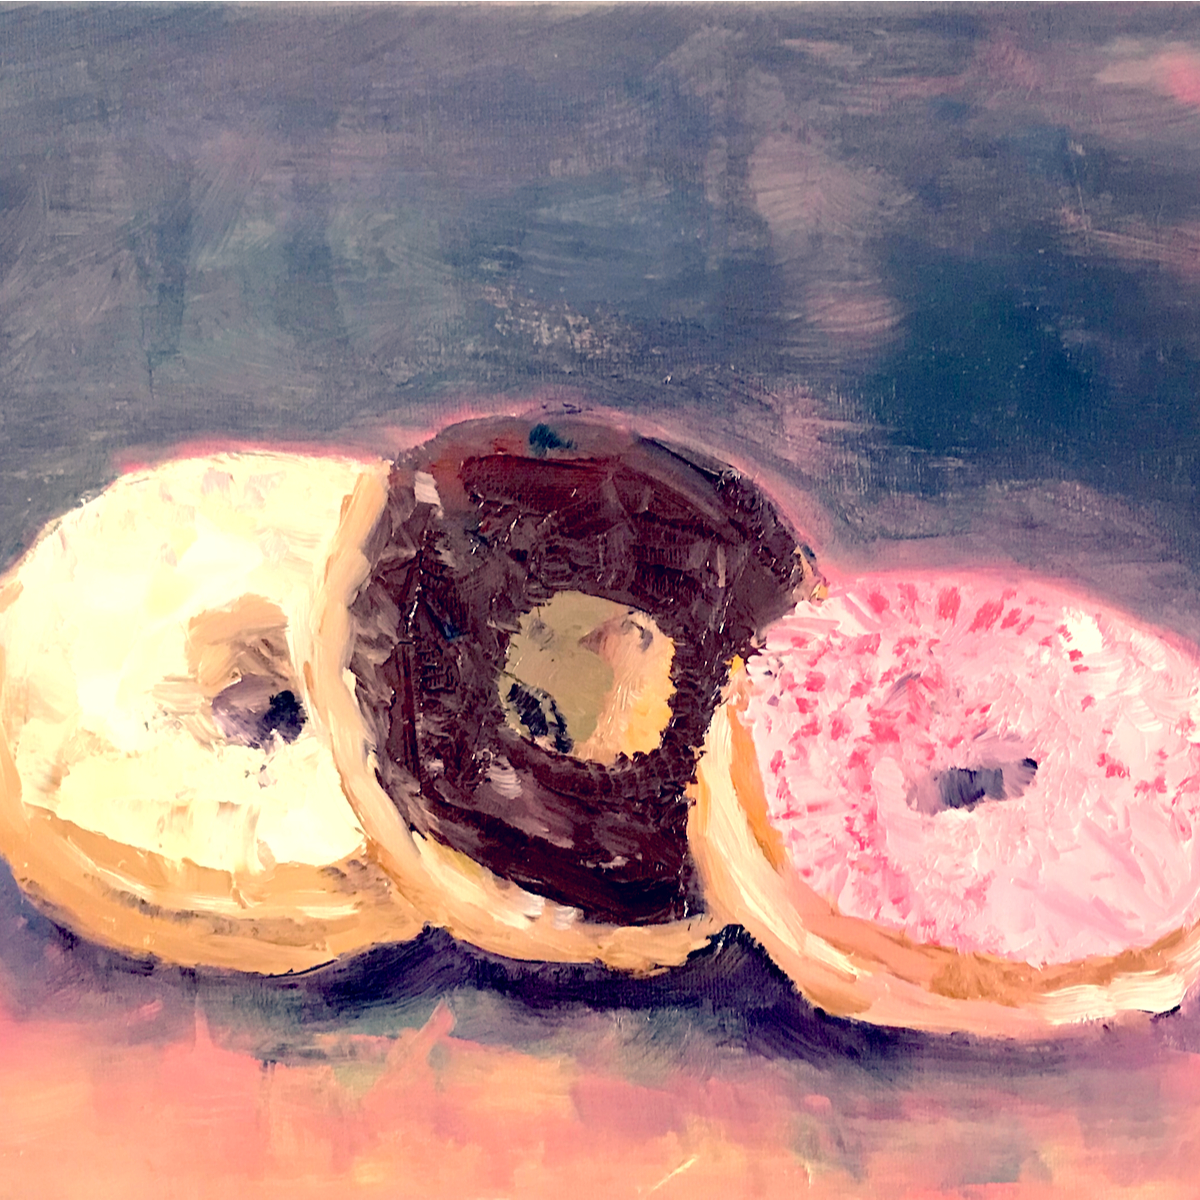 donut painting for top places to get donuts in GTA